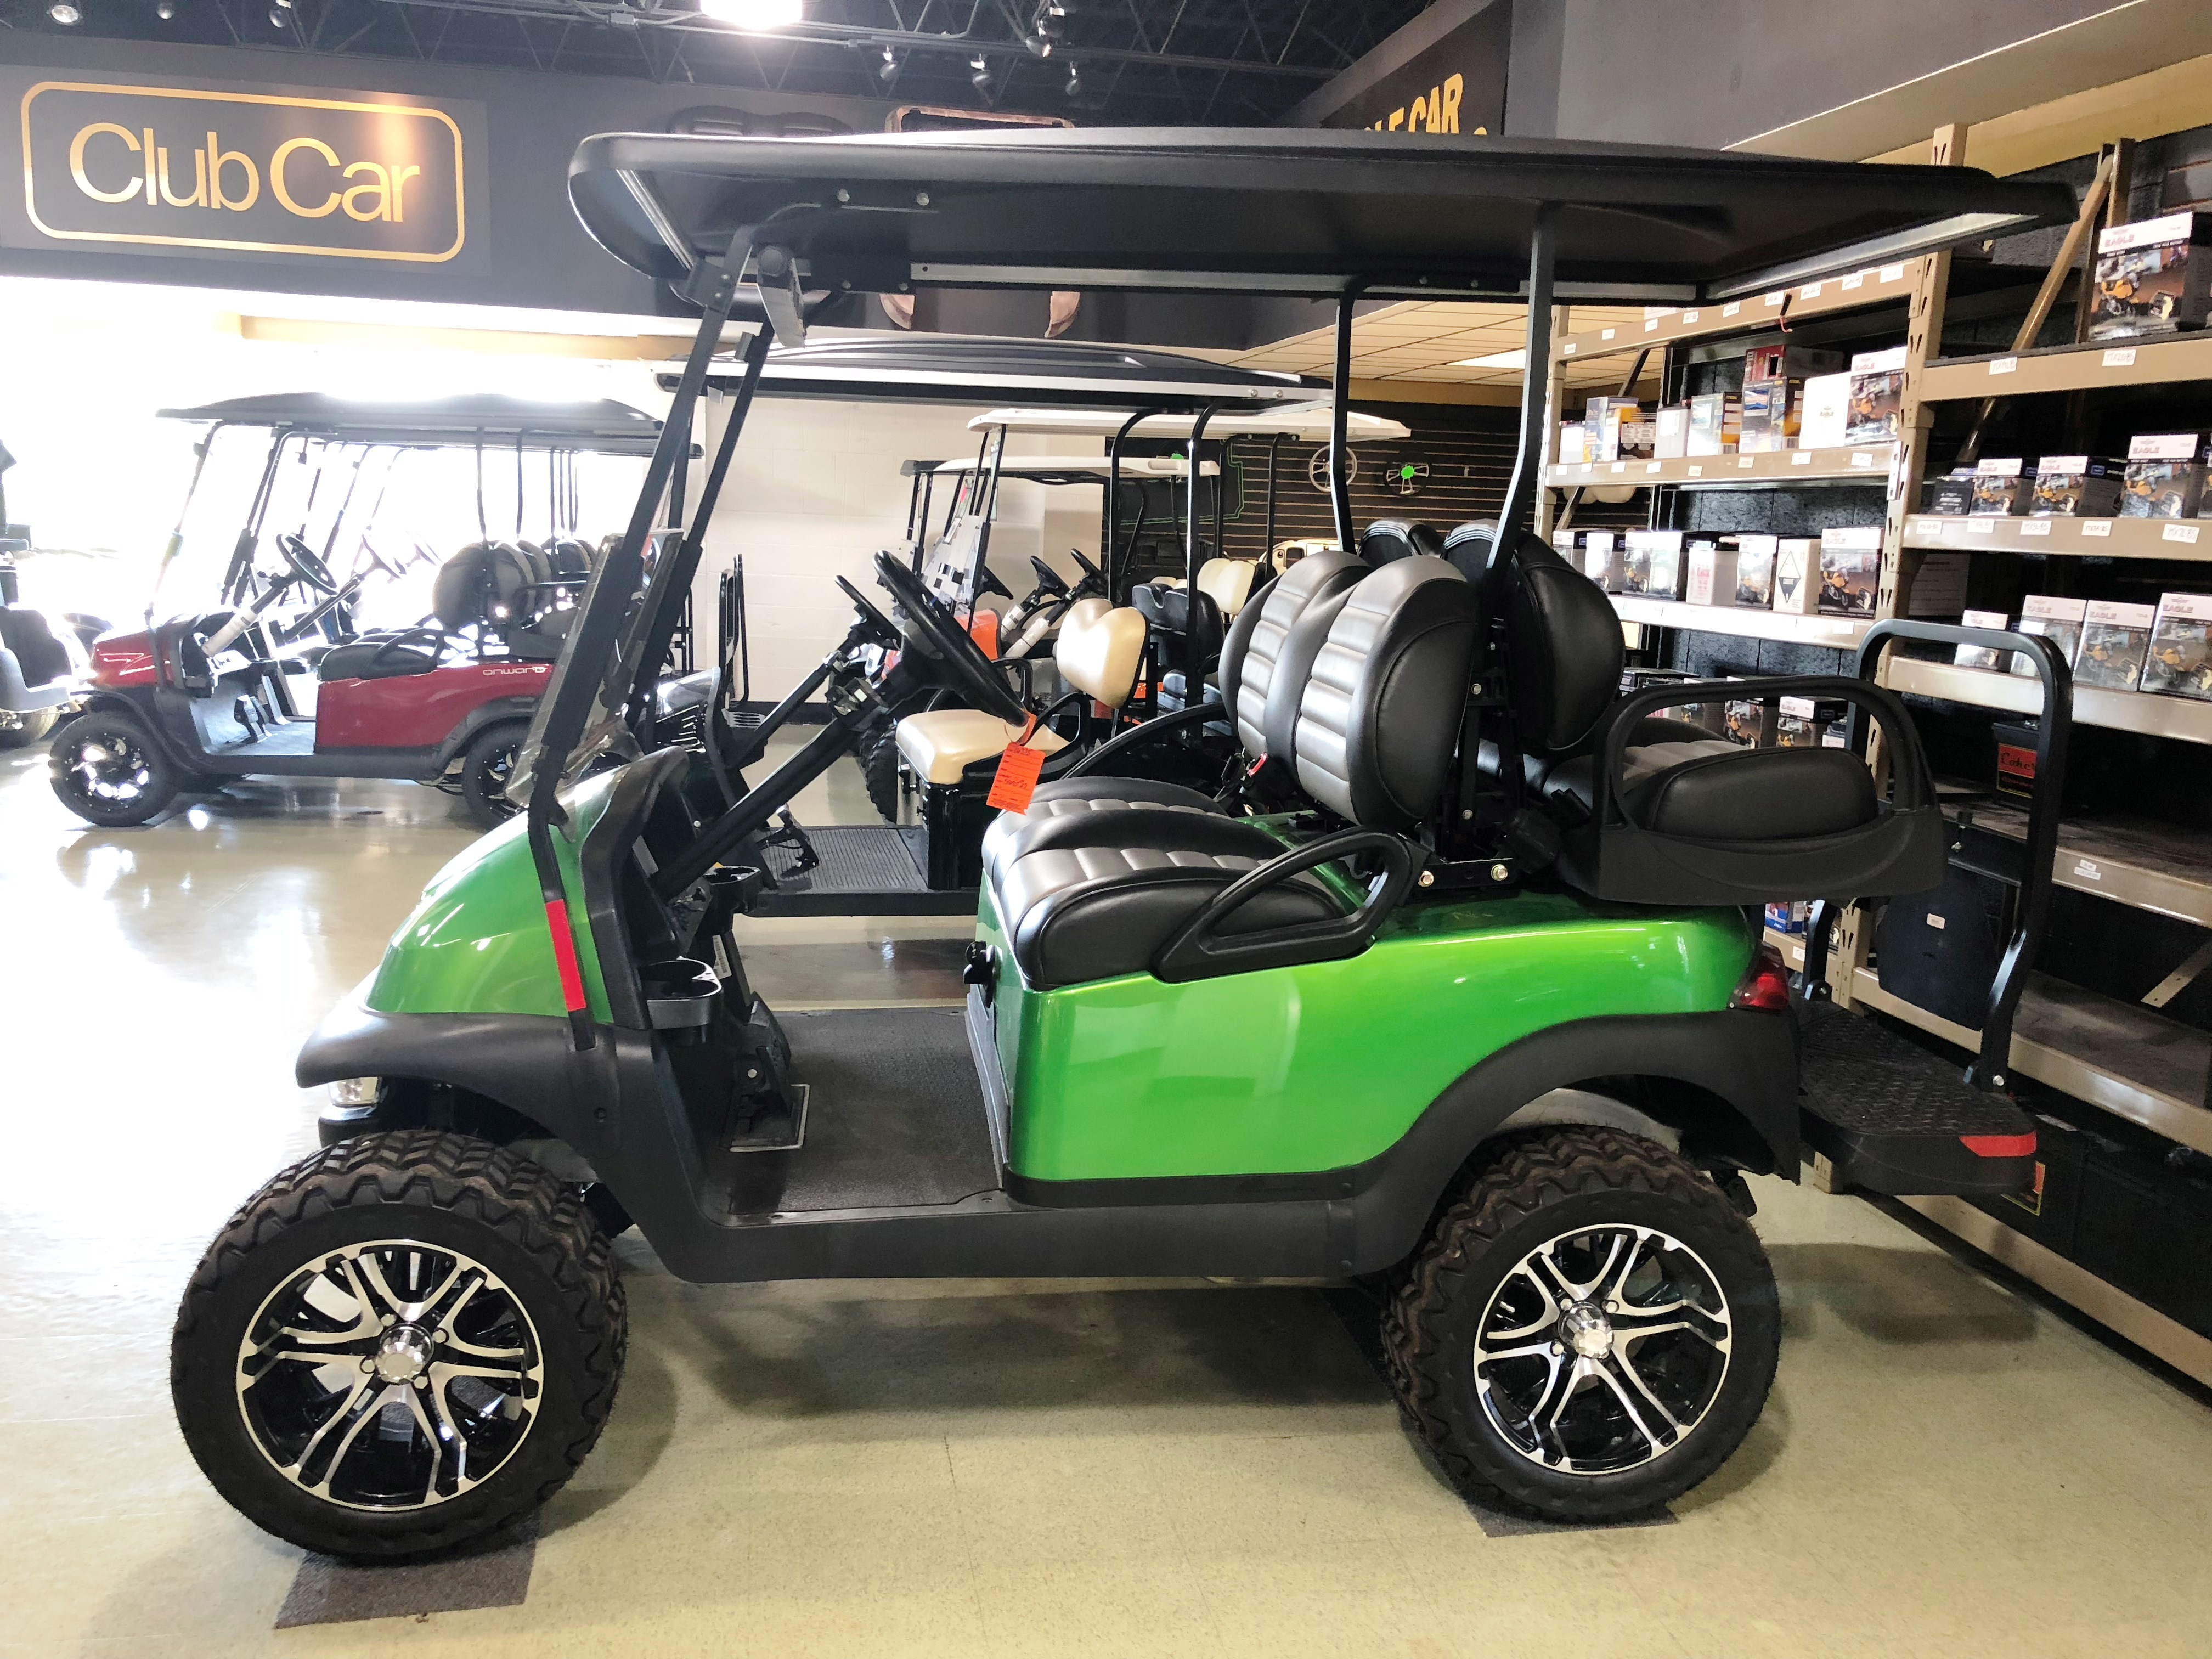 2015 SYNERGY GREEN Club Car Precedent Gas Golf Car $8150